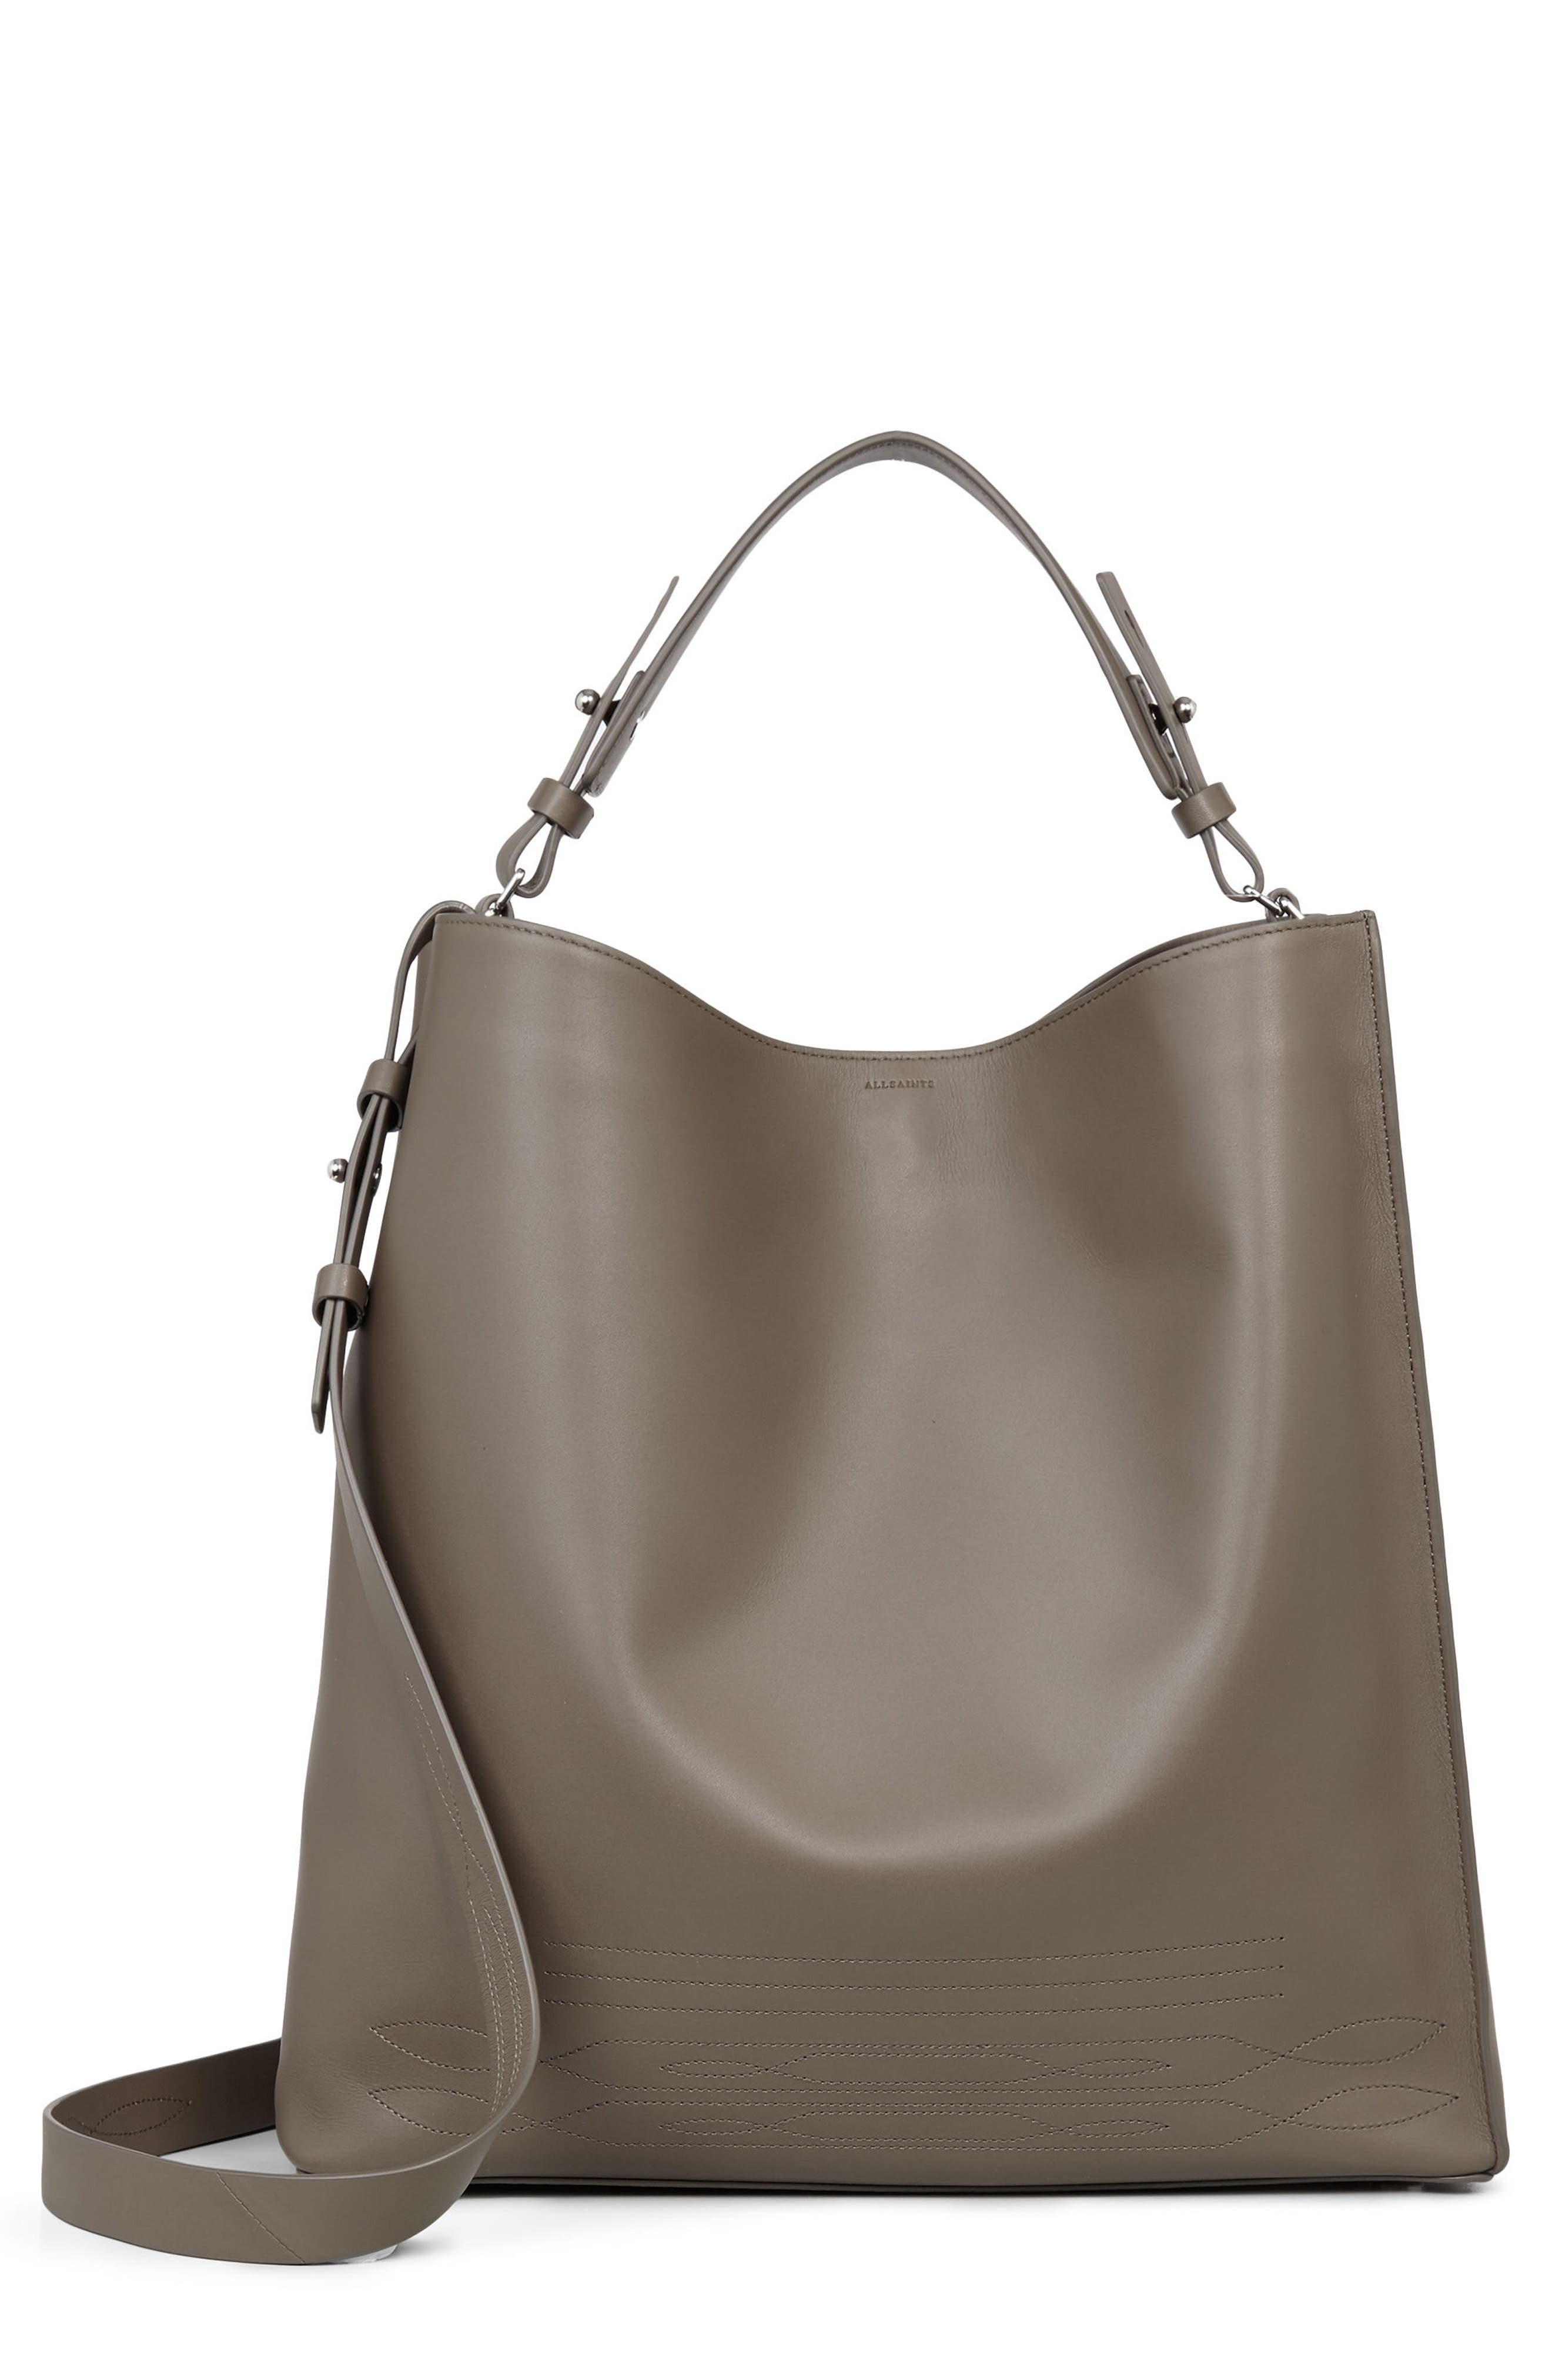 Alternate Image 1 Selected - ALLSAINTS Cooper East/West Calfskin Leather Tote